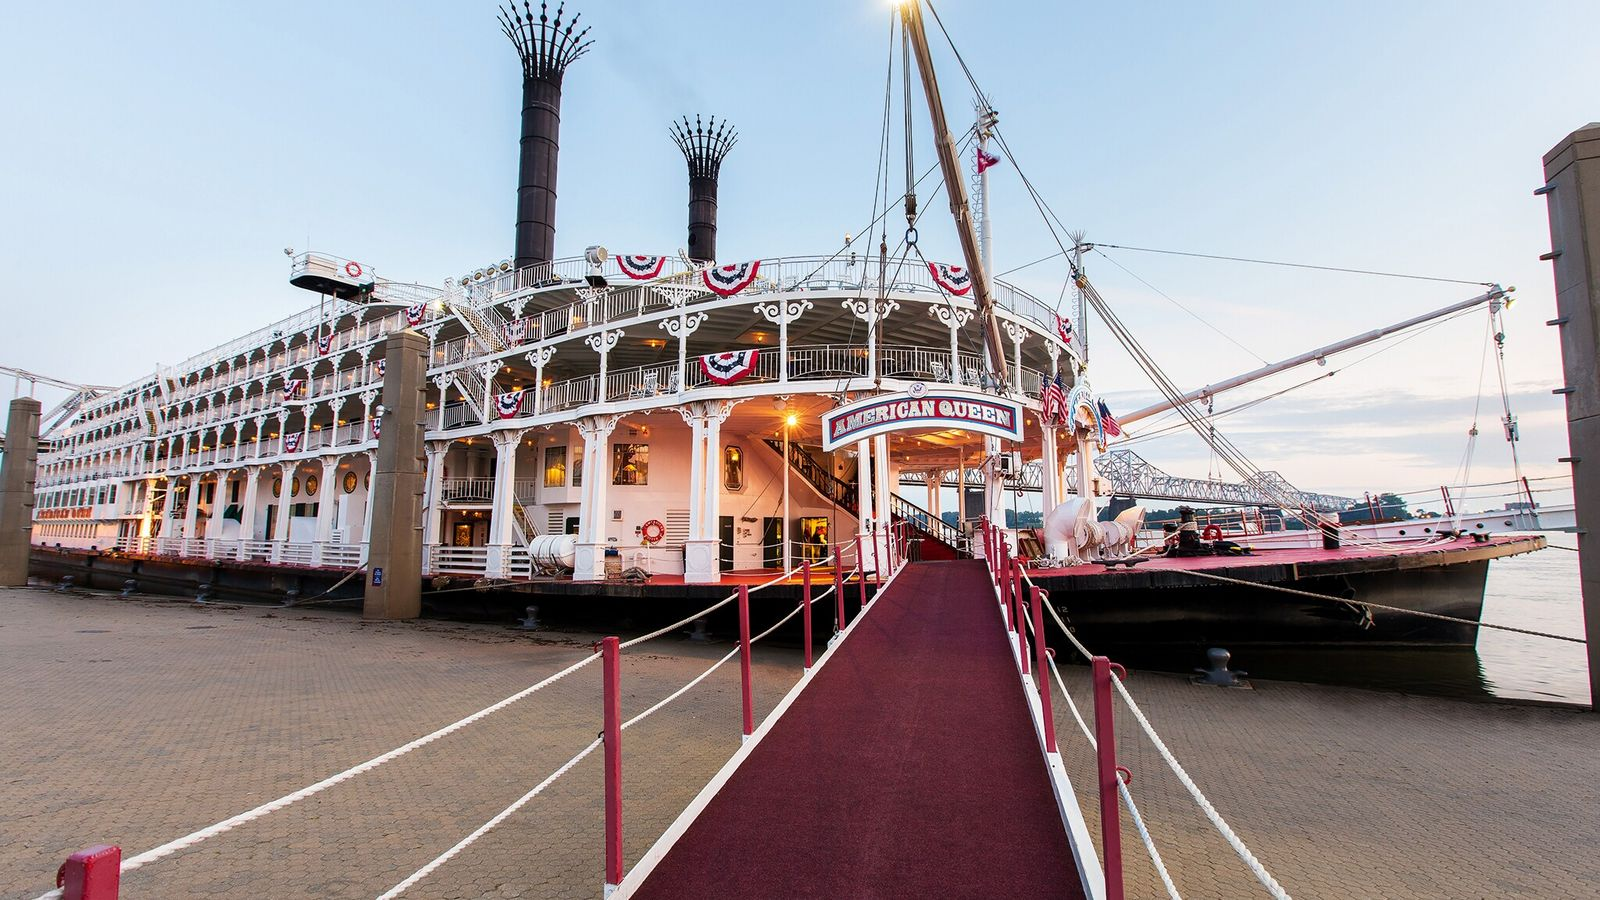 American Queen, the world's largest riverboat, built in 1995.